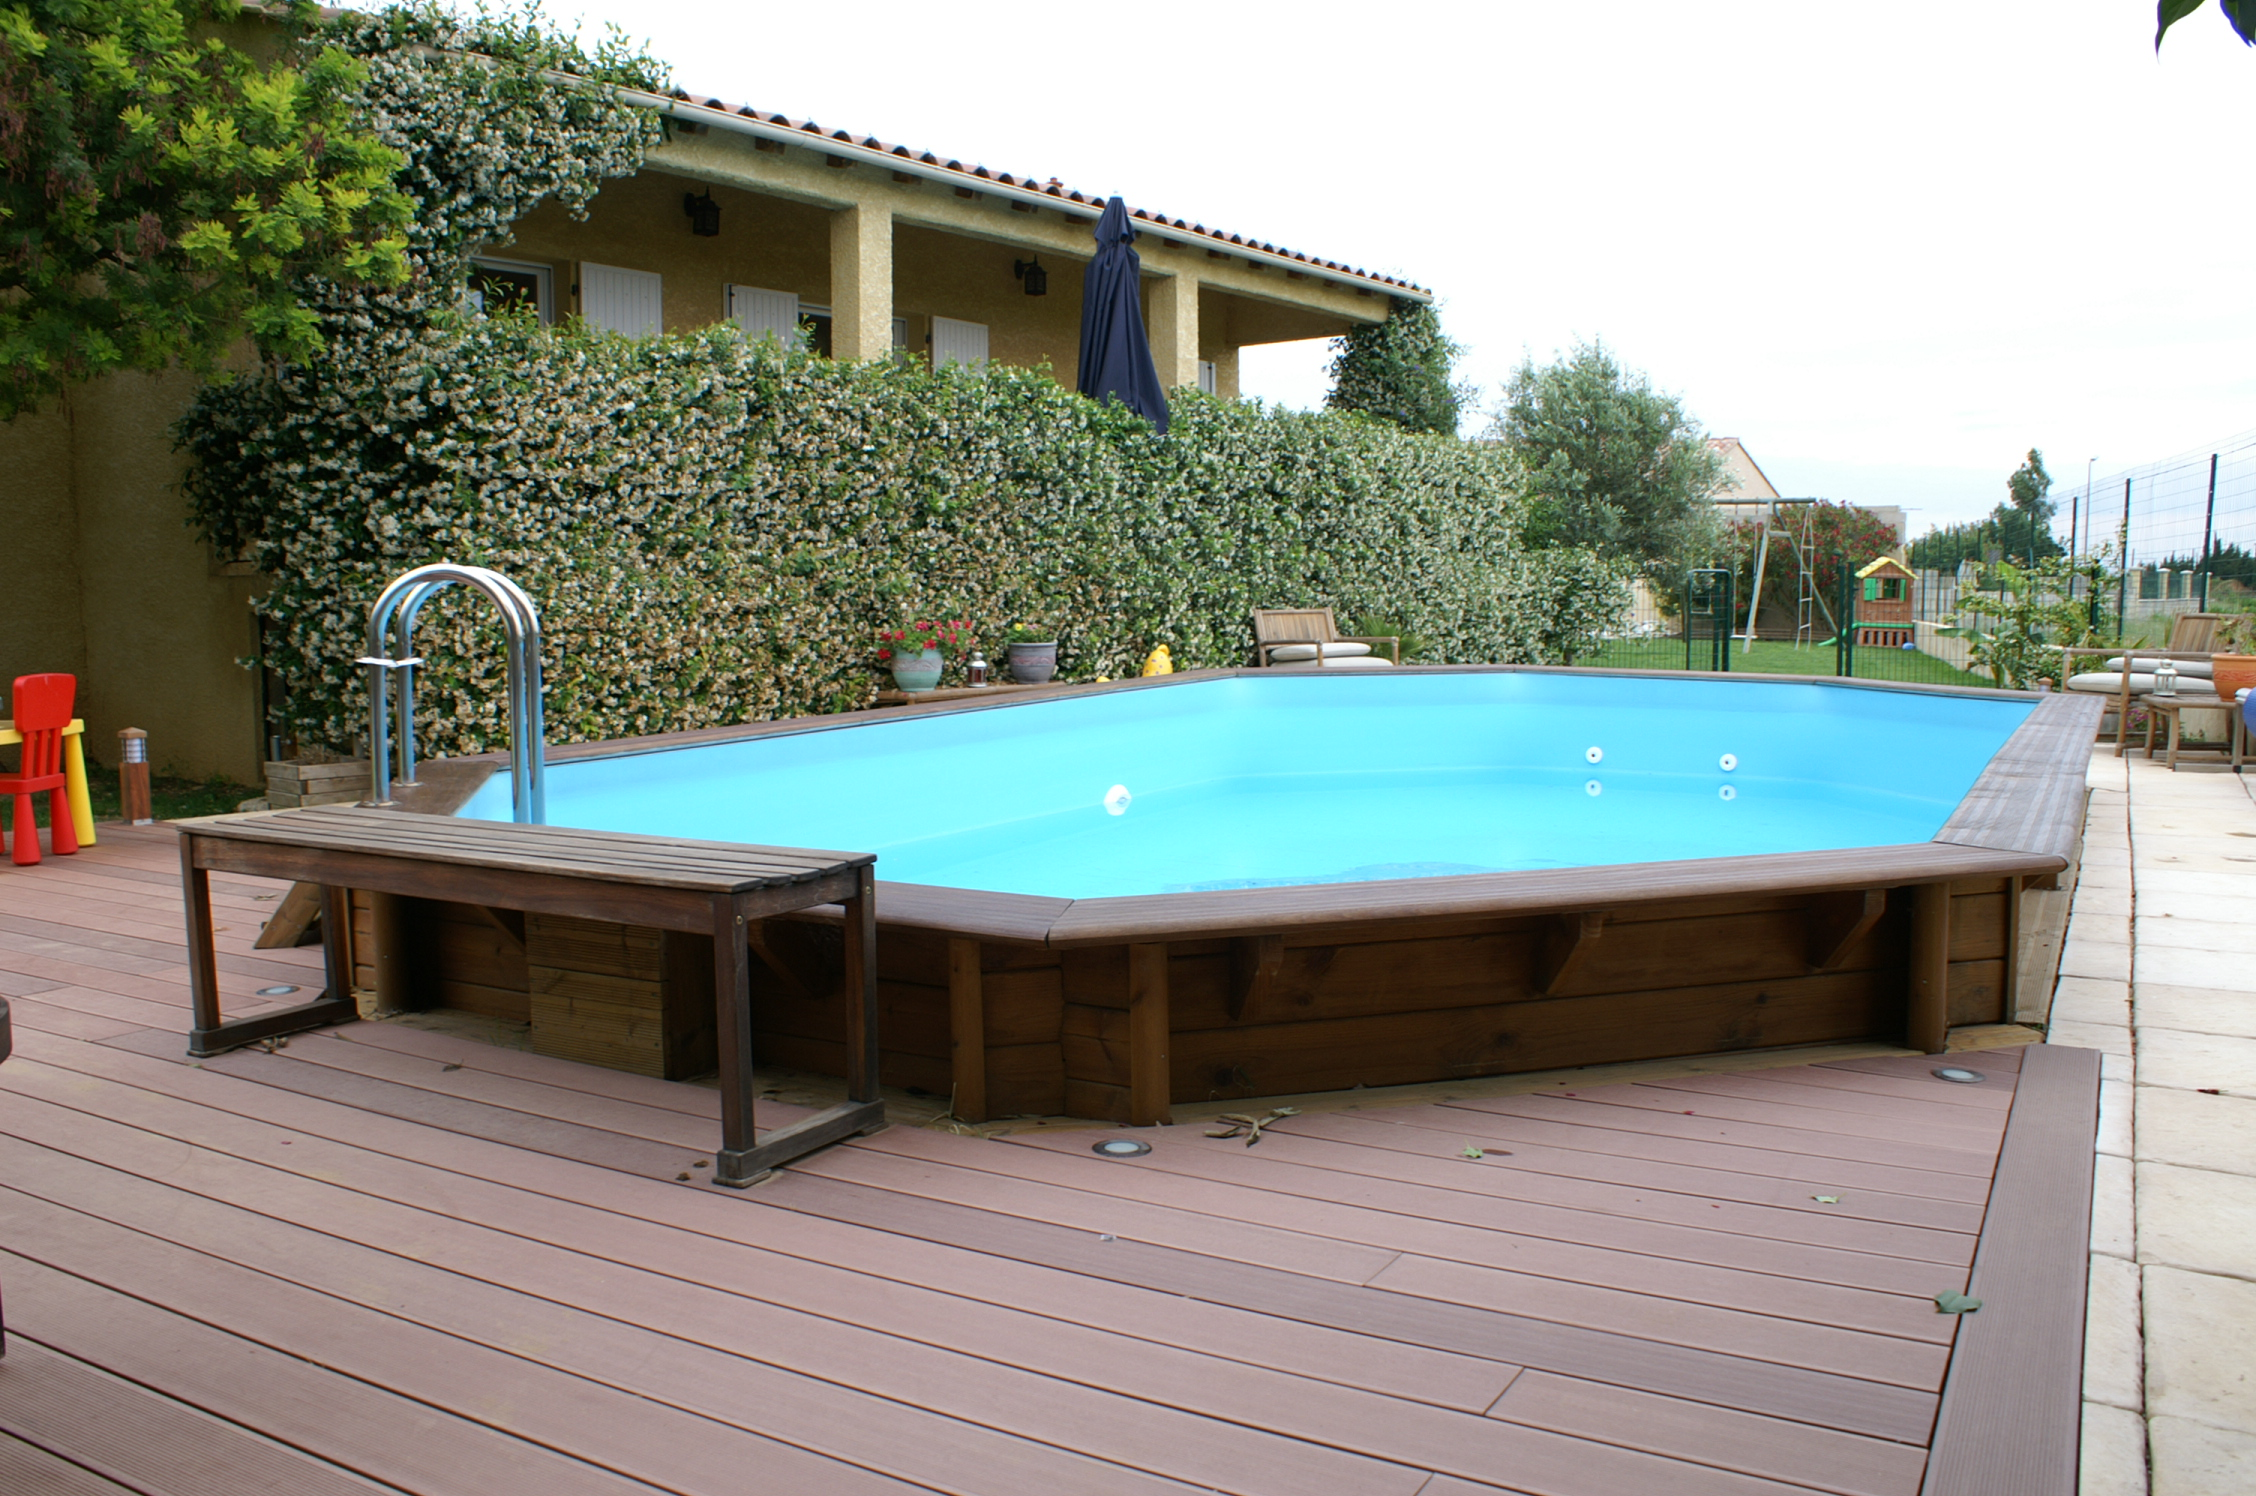 Construction piscines nimes gepad piscines et spa 30000 for Norme piscine hors sol